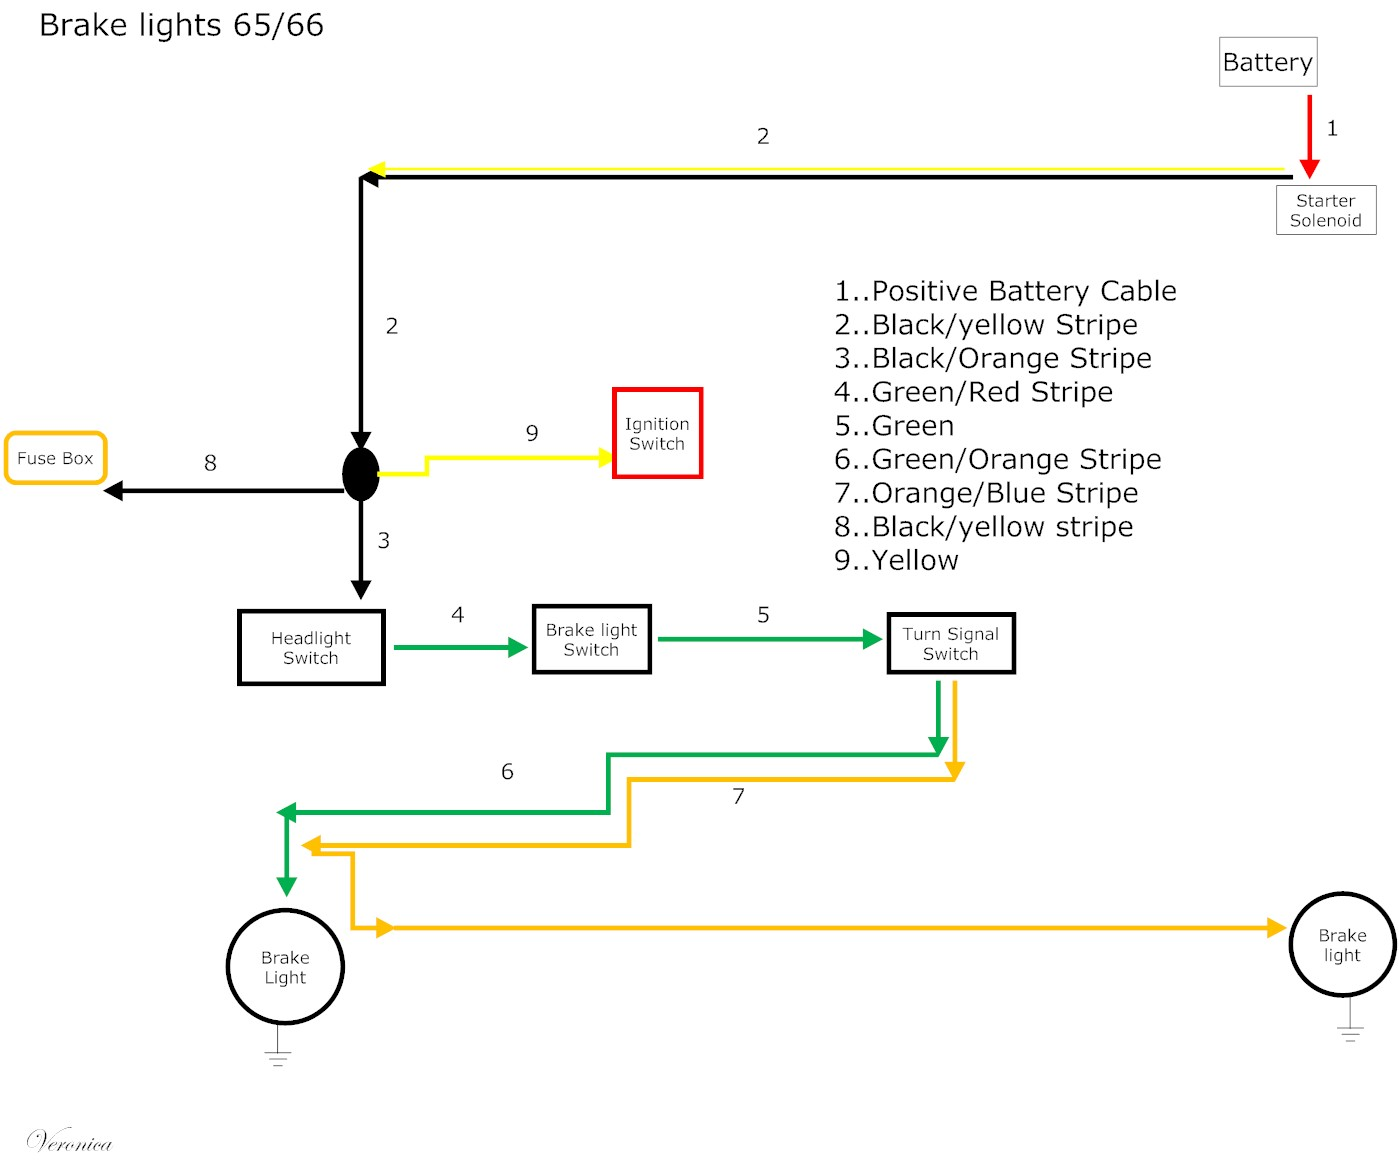 Exterior Light Wiring Diagram 65 Mustang